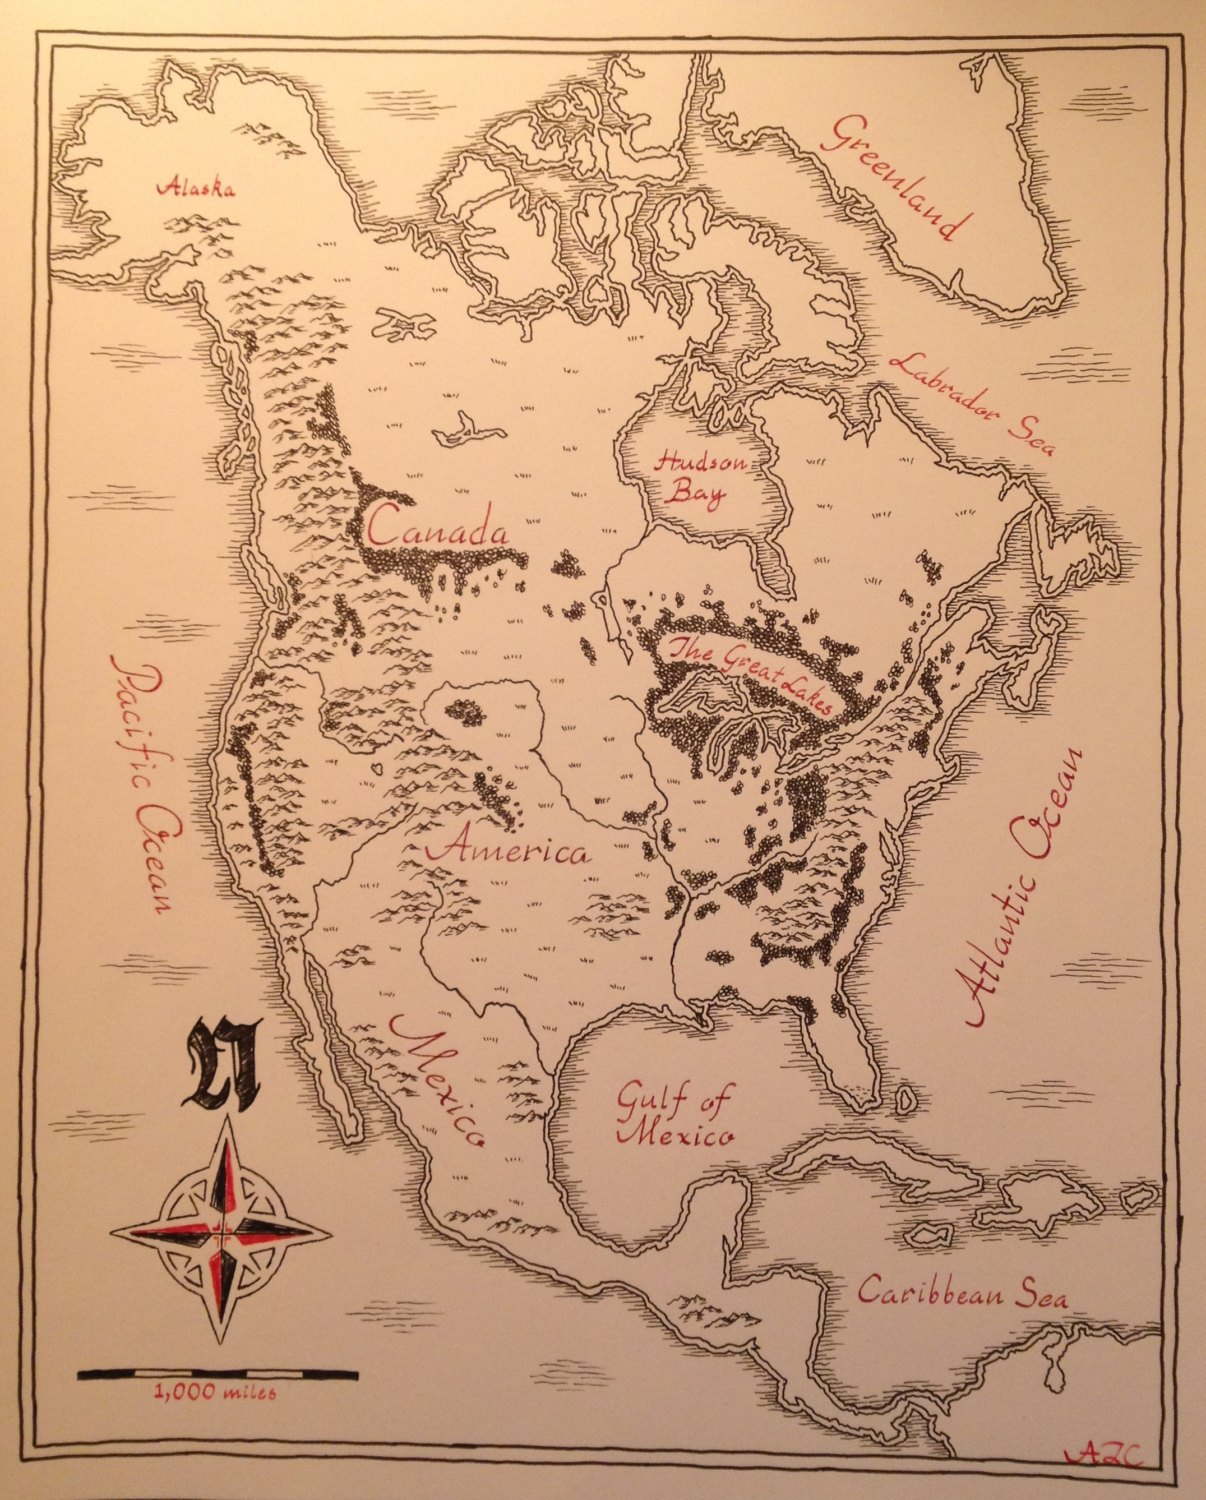 An Artist Drew a Lord of the Rings Style Map of America and it – Lord of the Rings Detailed Map